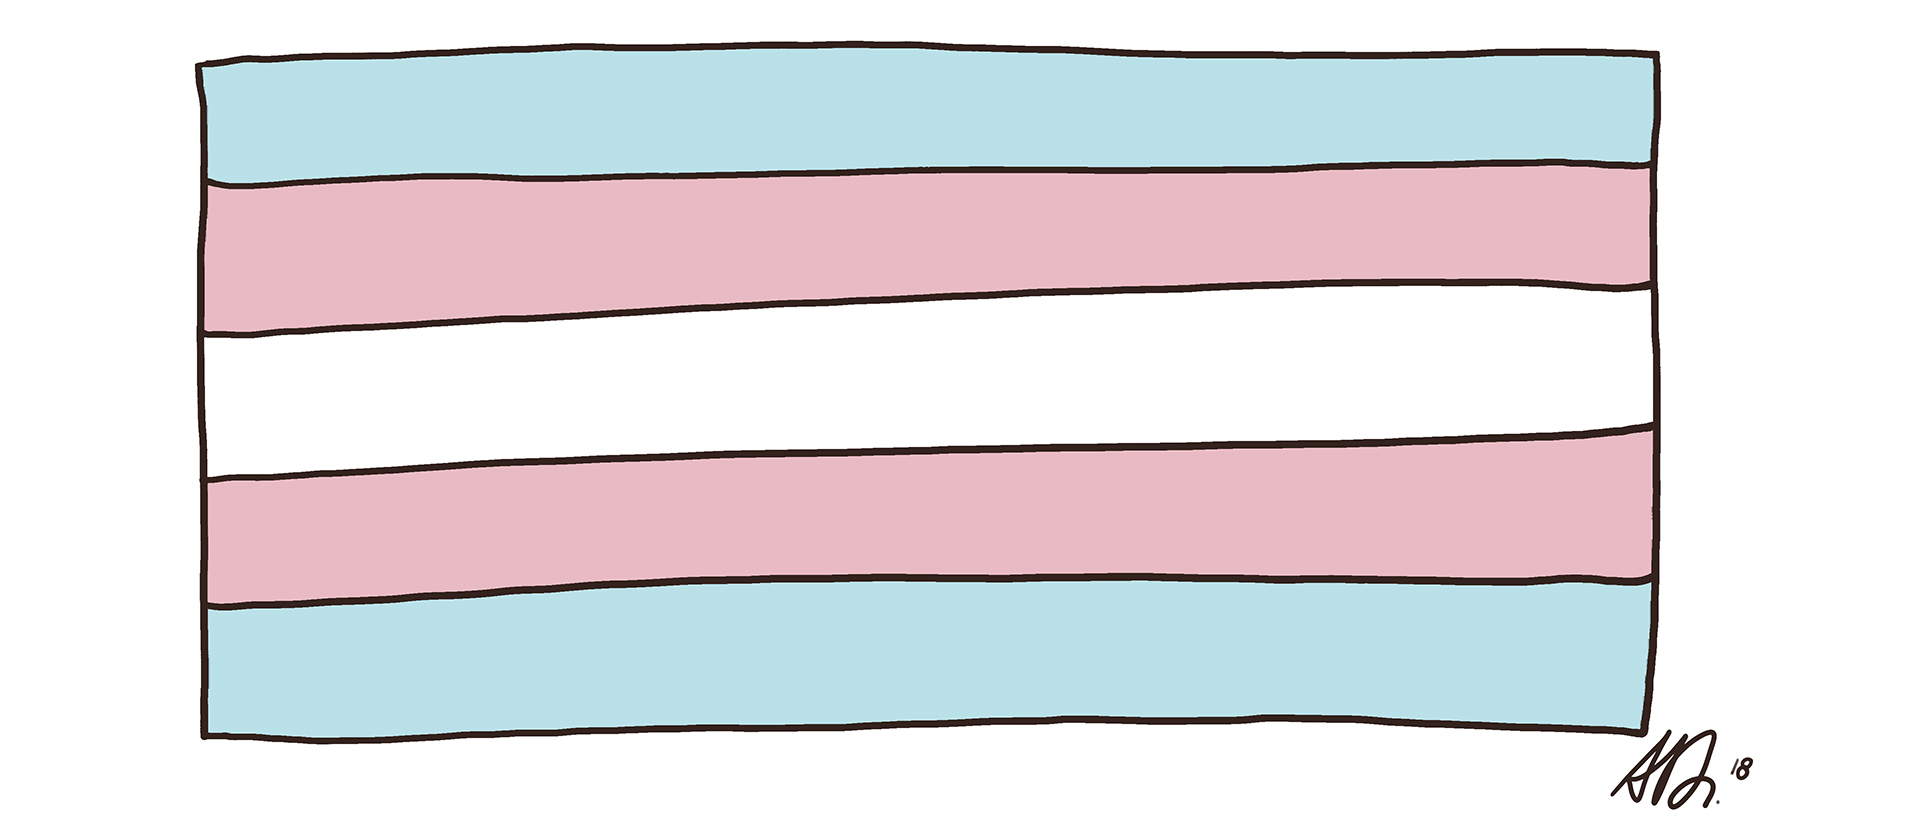 a pink, blue, and white striped flag representing transgender rights